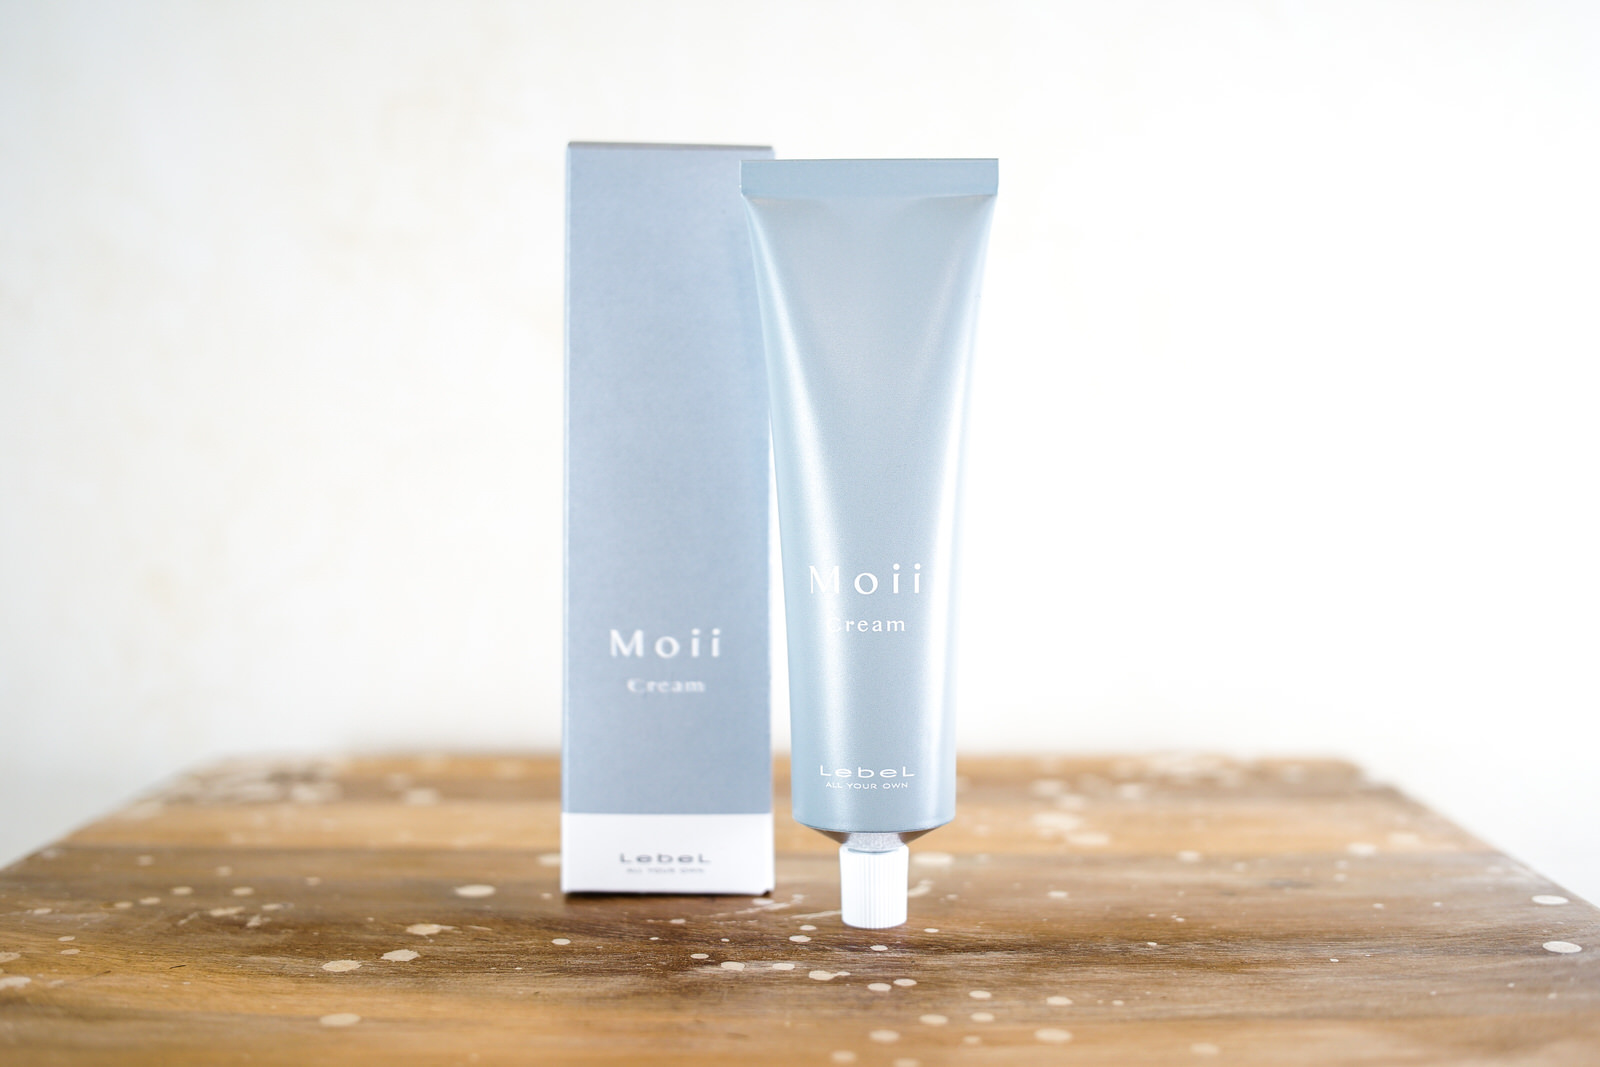 Lebel Moi cream Glory there Image